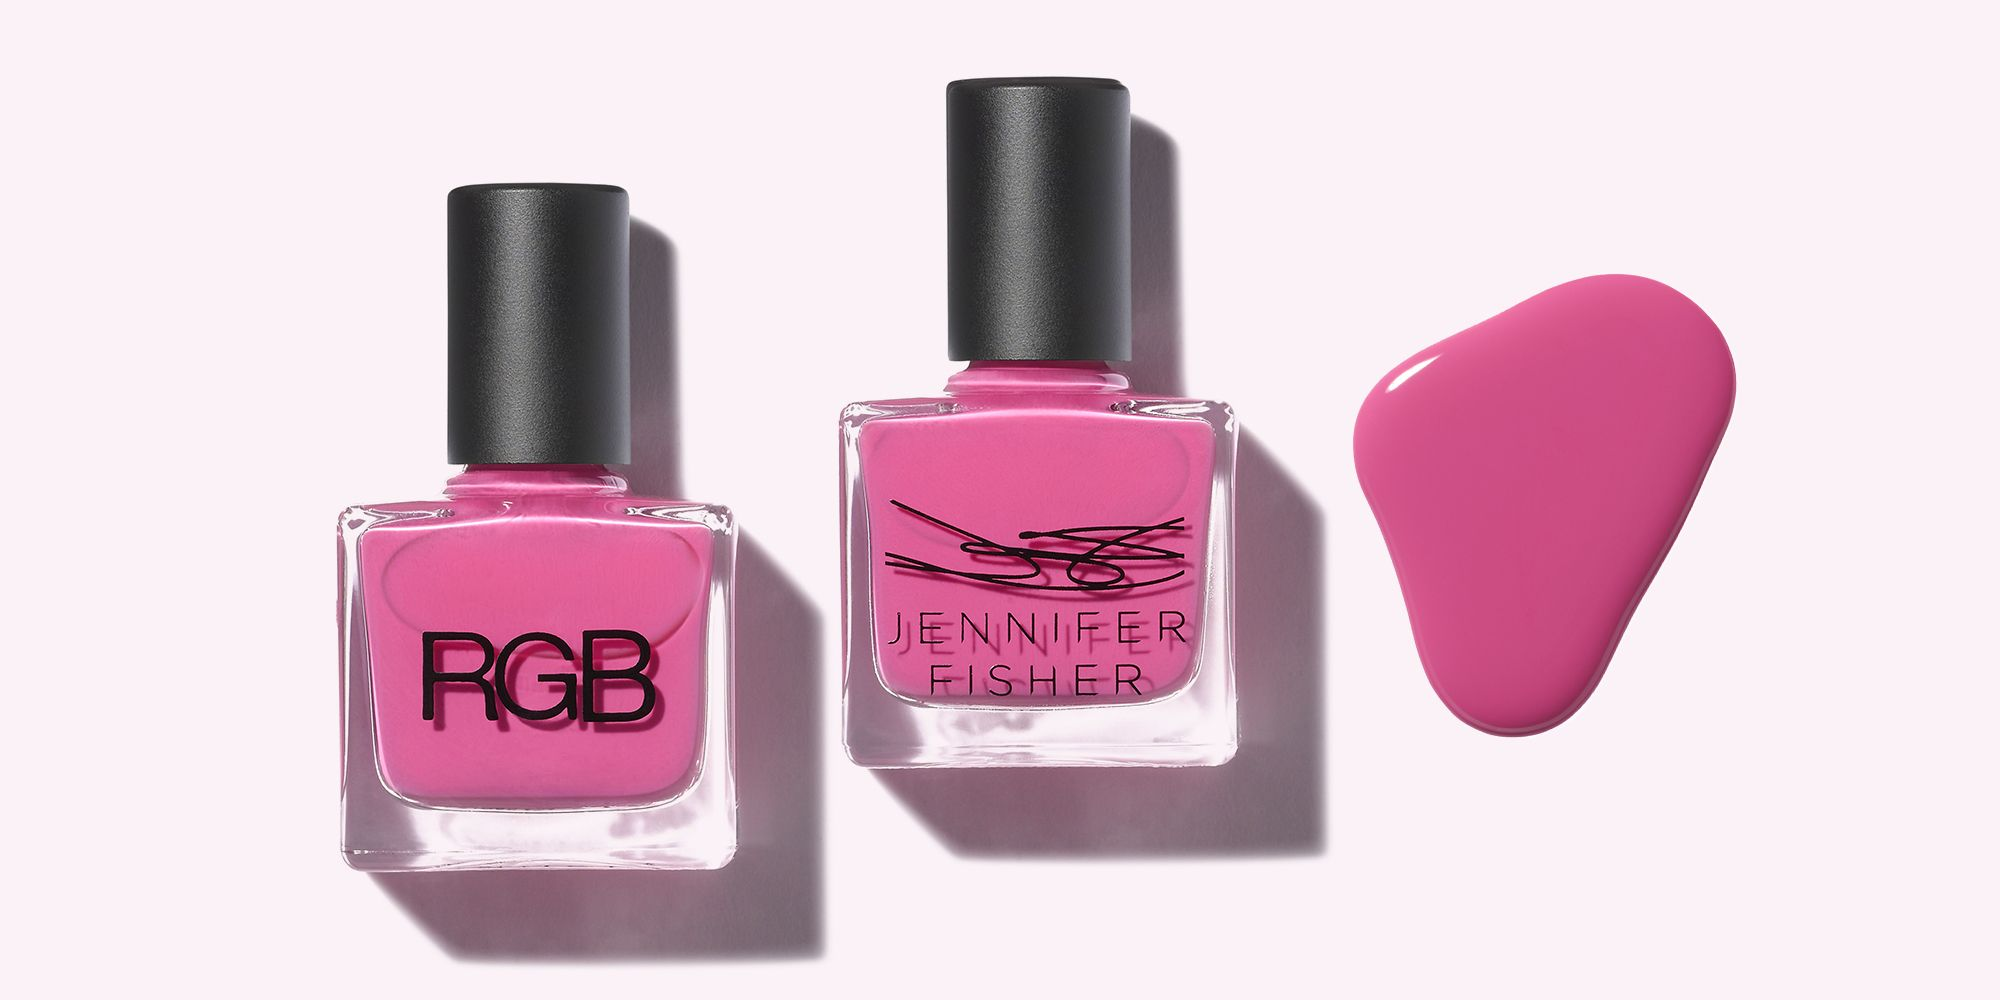 Nontoxic Nail Polish Brands For Next-Level Manis You\'ll Feel Good About